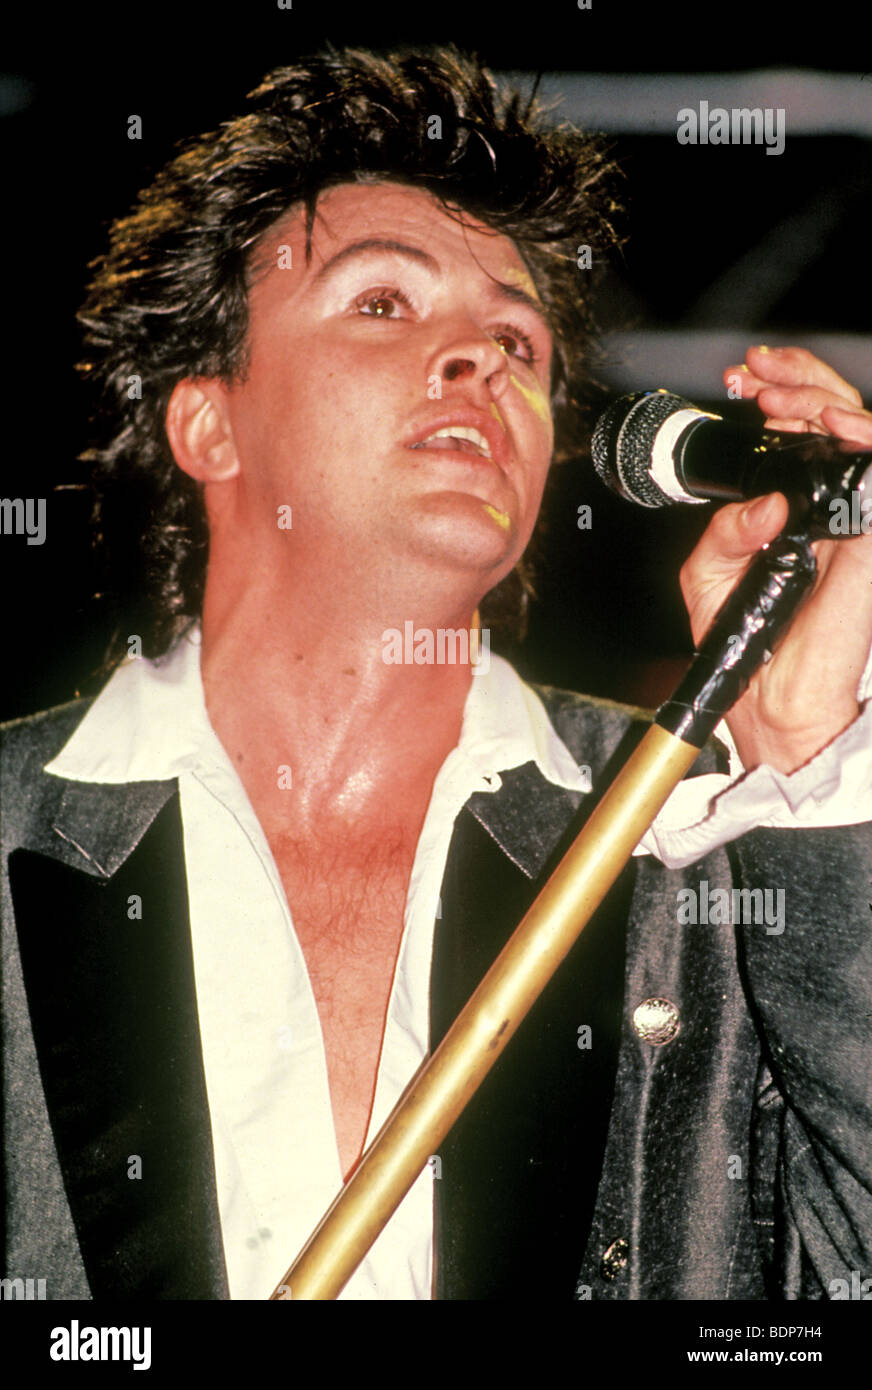 PAUL YOUNG - UK pop singer about 1985 - Stock Image